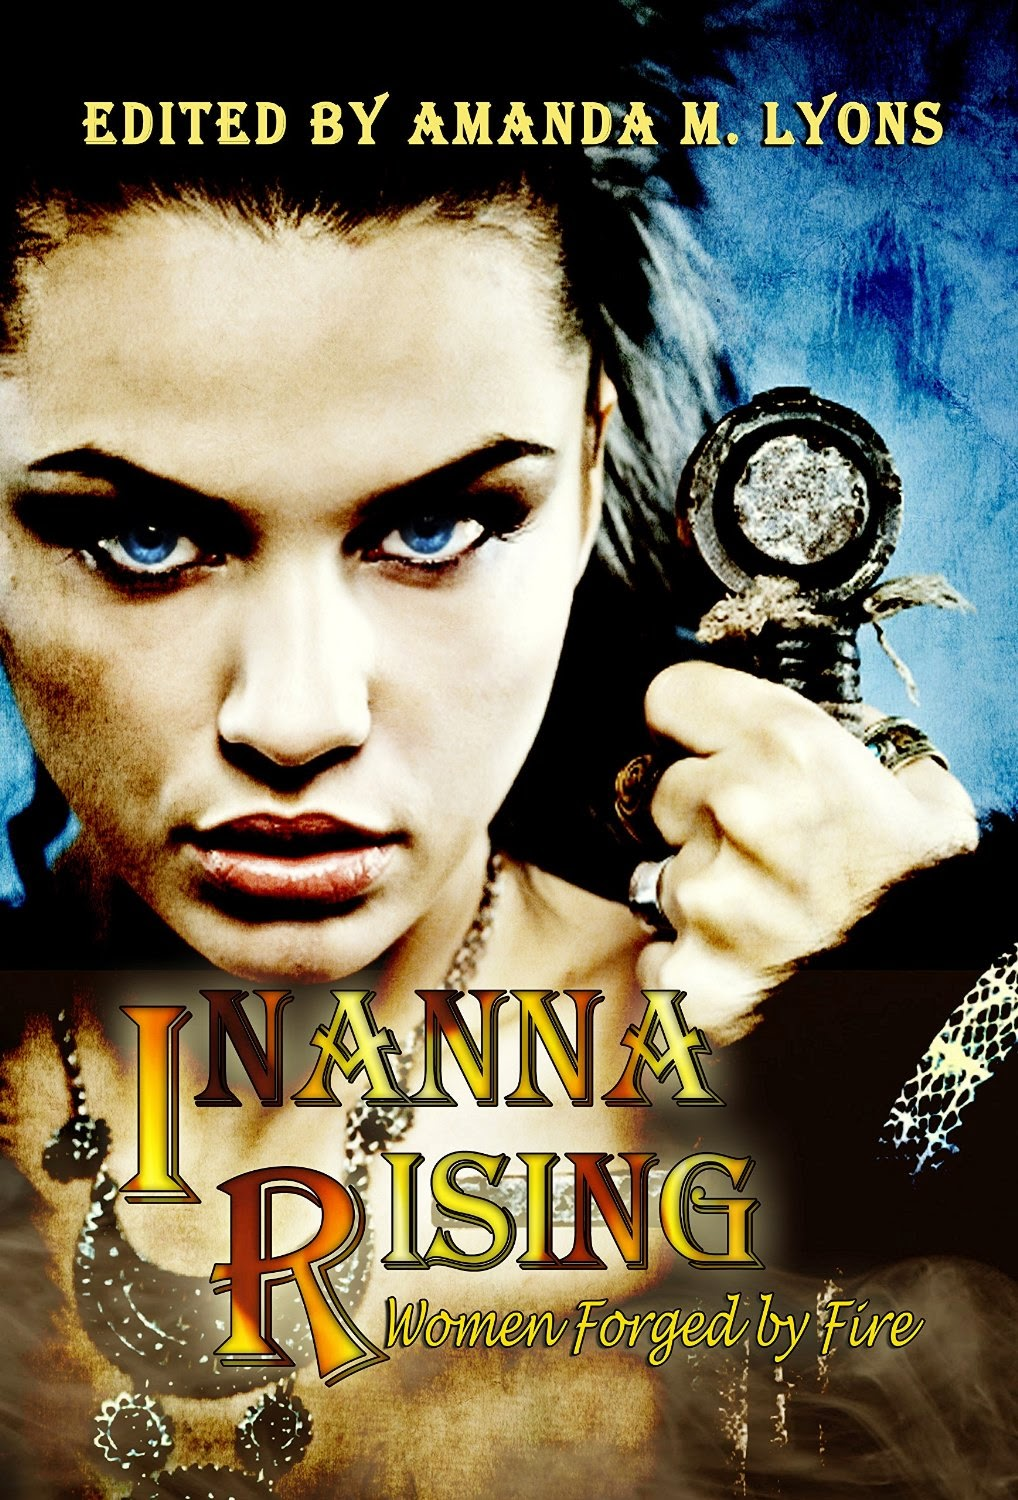 http://www.amazon.com/Inanna-Rising-Women-Forged-Fire-ebook/dp/B00TKNTIZQ/ref=sr_1_2?ie=UTF8&qid=1423882889&sr=8-2&keywords=inanna+rising